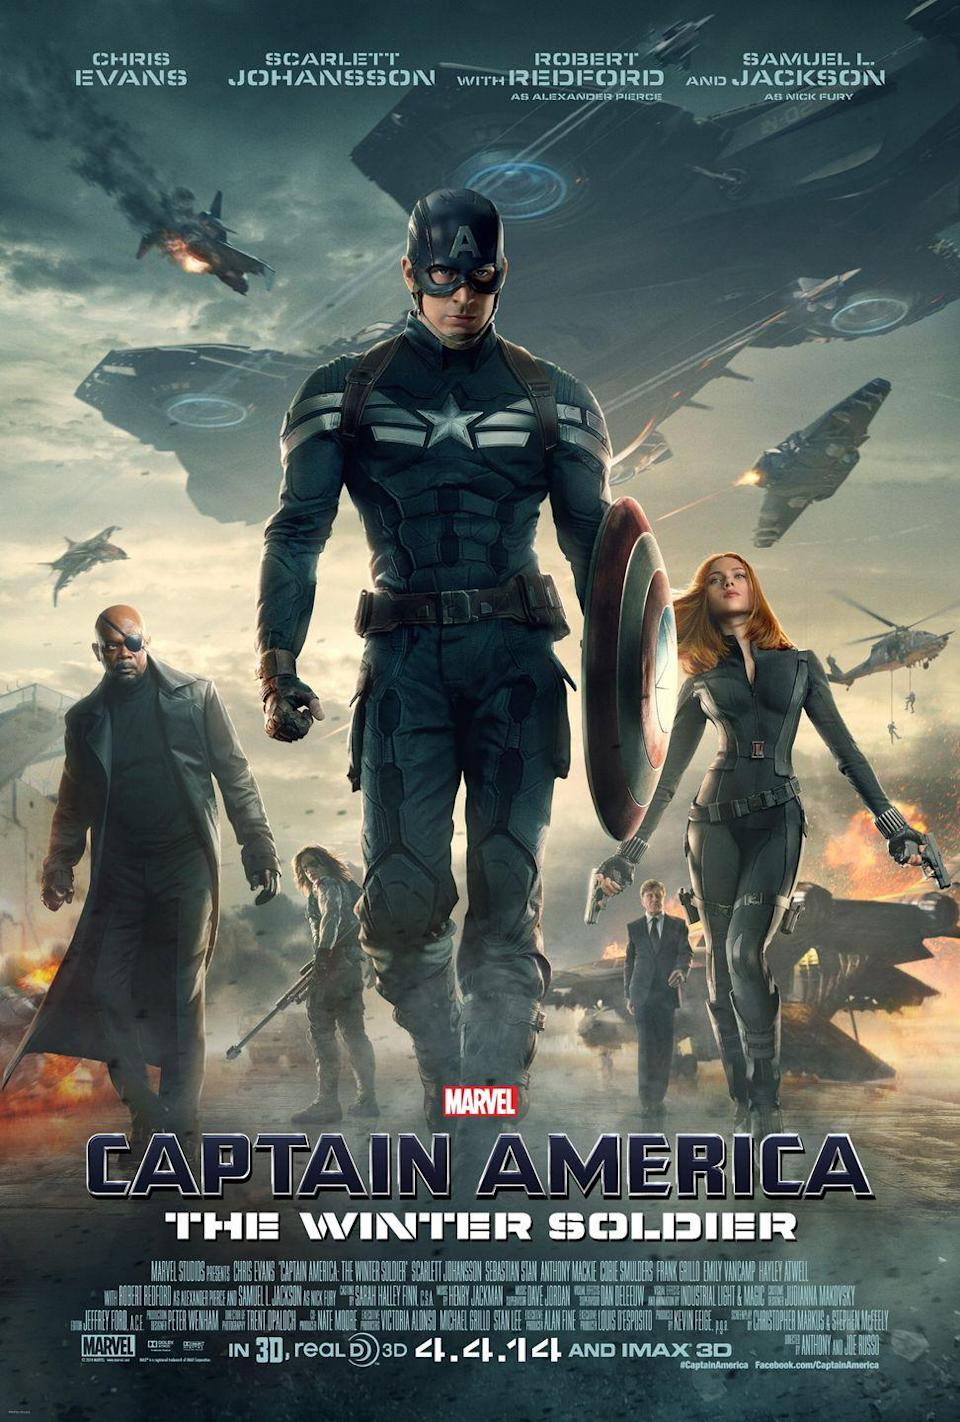 """<p>Chris Evans stars as Captain America once again in this sequel to <em>Captain America: The First Avenger. </em>In this film, he teams up with a fellow Avenger to battle an assassin called the Winter Soldier.</p><p><a class=""""link rapid-noclick-resp"""" href=""""https://www.amazon.com/Captain-America-Winter-Soldier-Theatrical/dp/B00NFQSXD2/ref=sr_1_2?tag=syn-yahoo-20&ascsubtag=%5Bartid%7C10070.g.36156094%5Bsrc%7Cyahoo-us"""" rel=""""nofollow noopener"""" target=""""_blank"""" data-ylk=""""slk:STREAM NOW"""">STREAM NOW</a><br> </p>"""